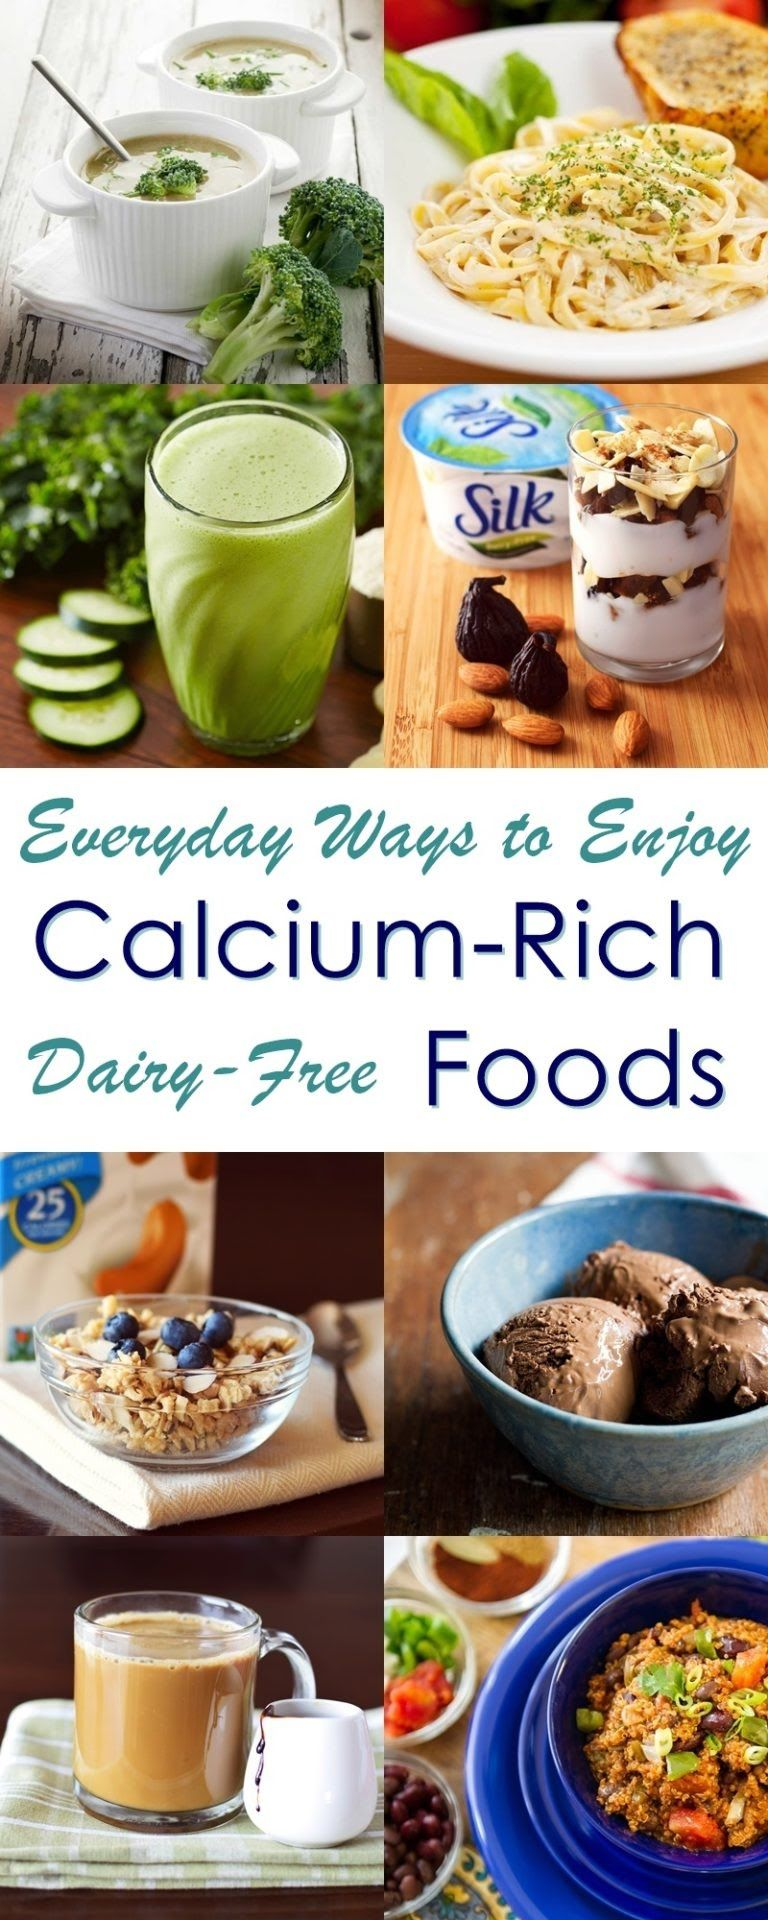 DairyFree CalciumRich Foods Recipes and Ideas to enjoy